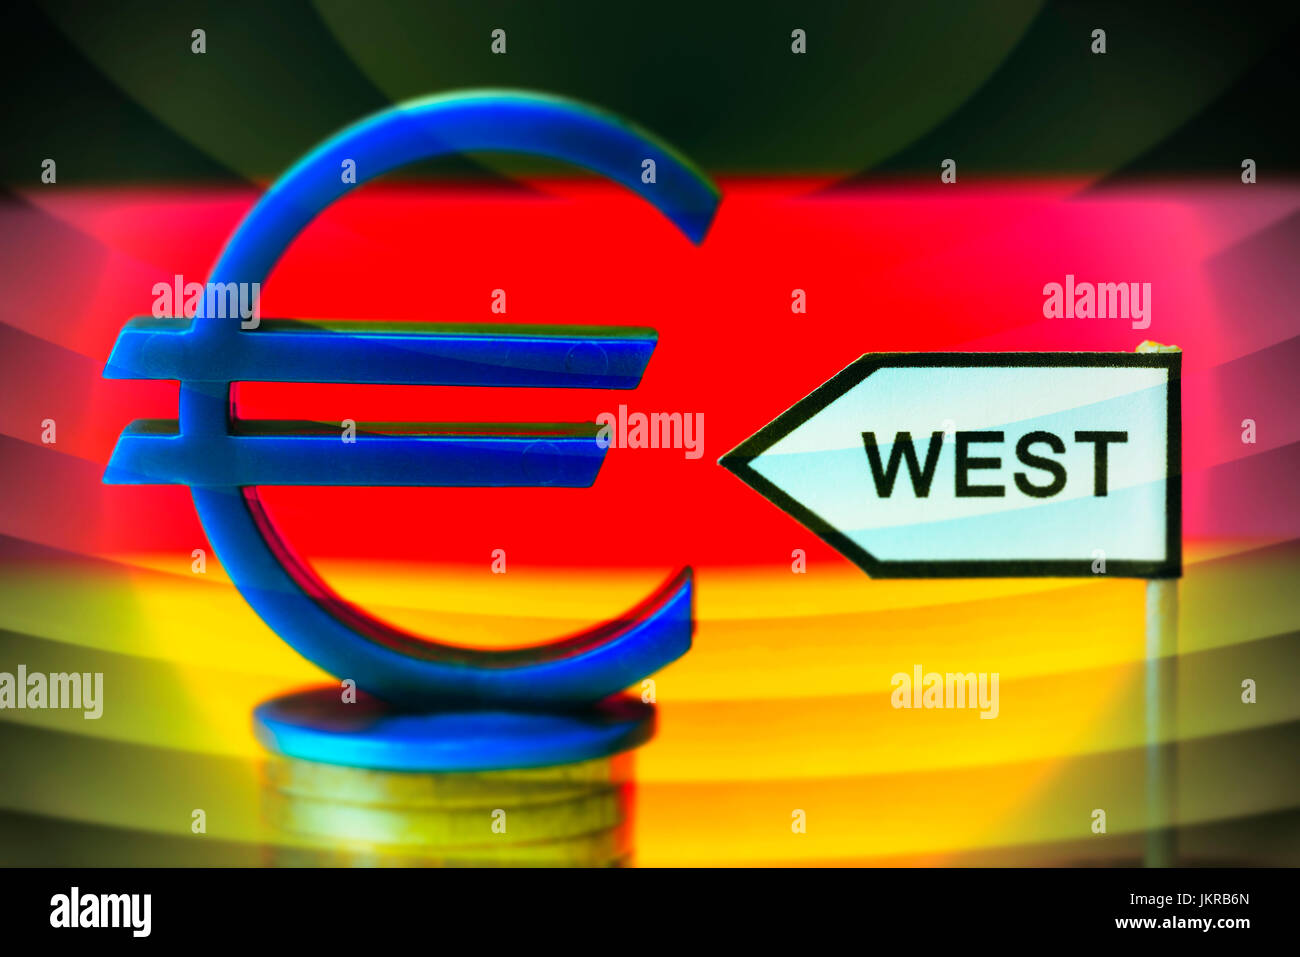 Signpost west and eurosign, unequal salaries in west country and Eastern Germany, Wegweiser West und Eurozeichen, - Stock Image